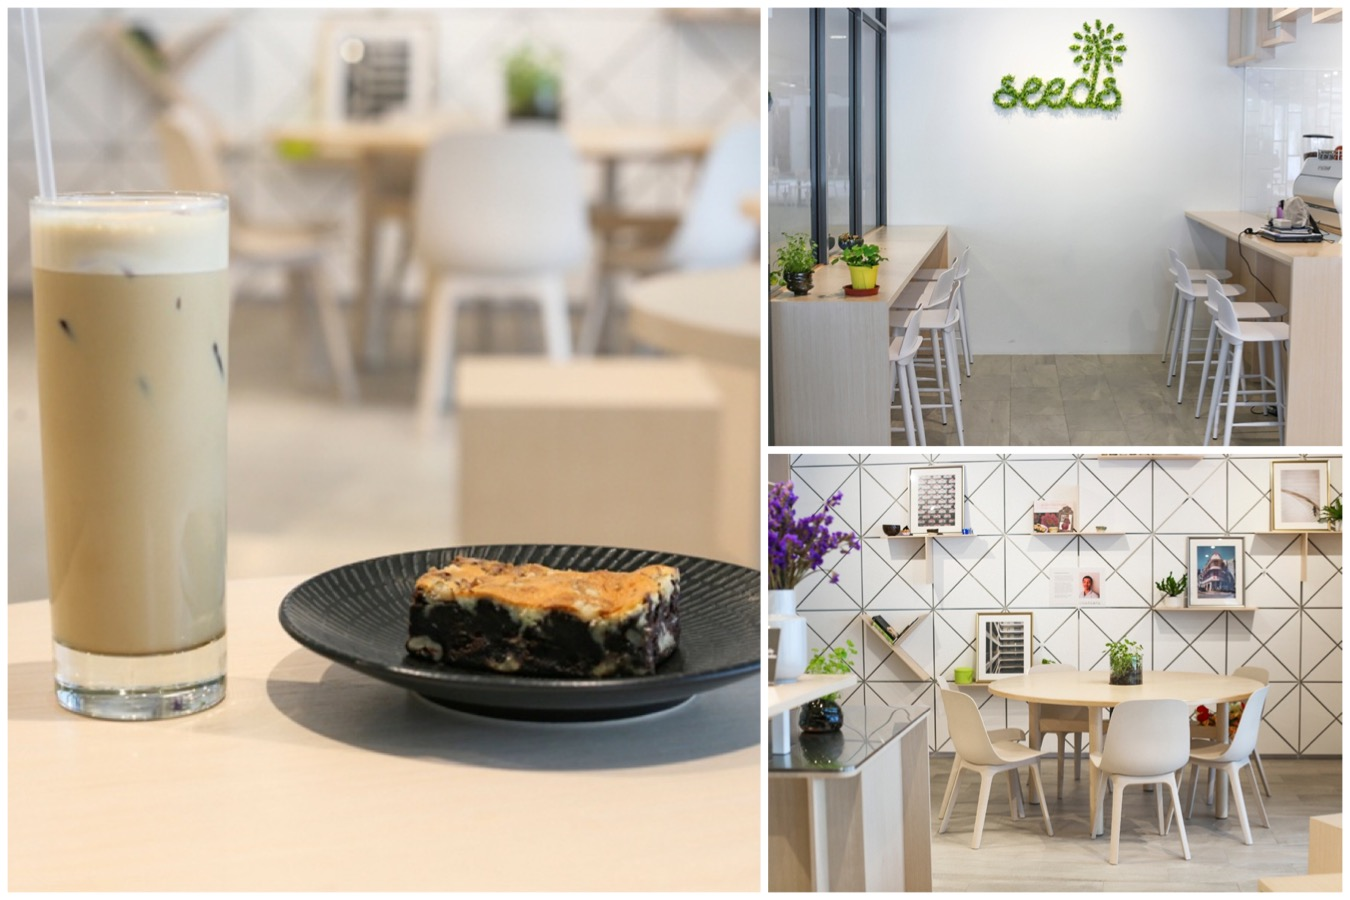 Seeds - Beautiful Café With Beautiful Heart. A Vocational Training Ground For Persons With Disabilities